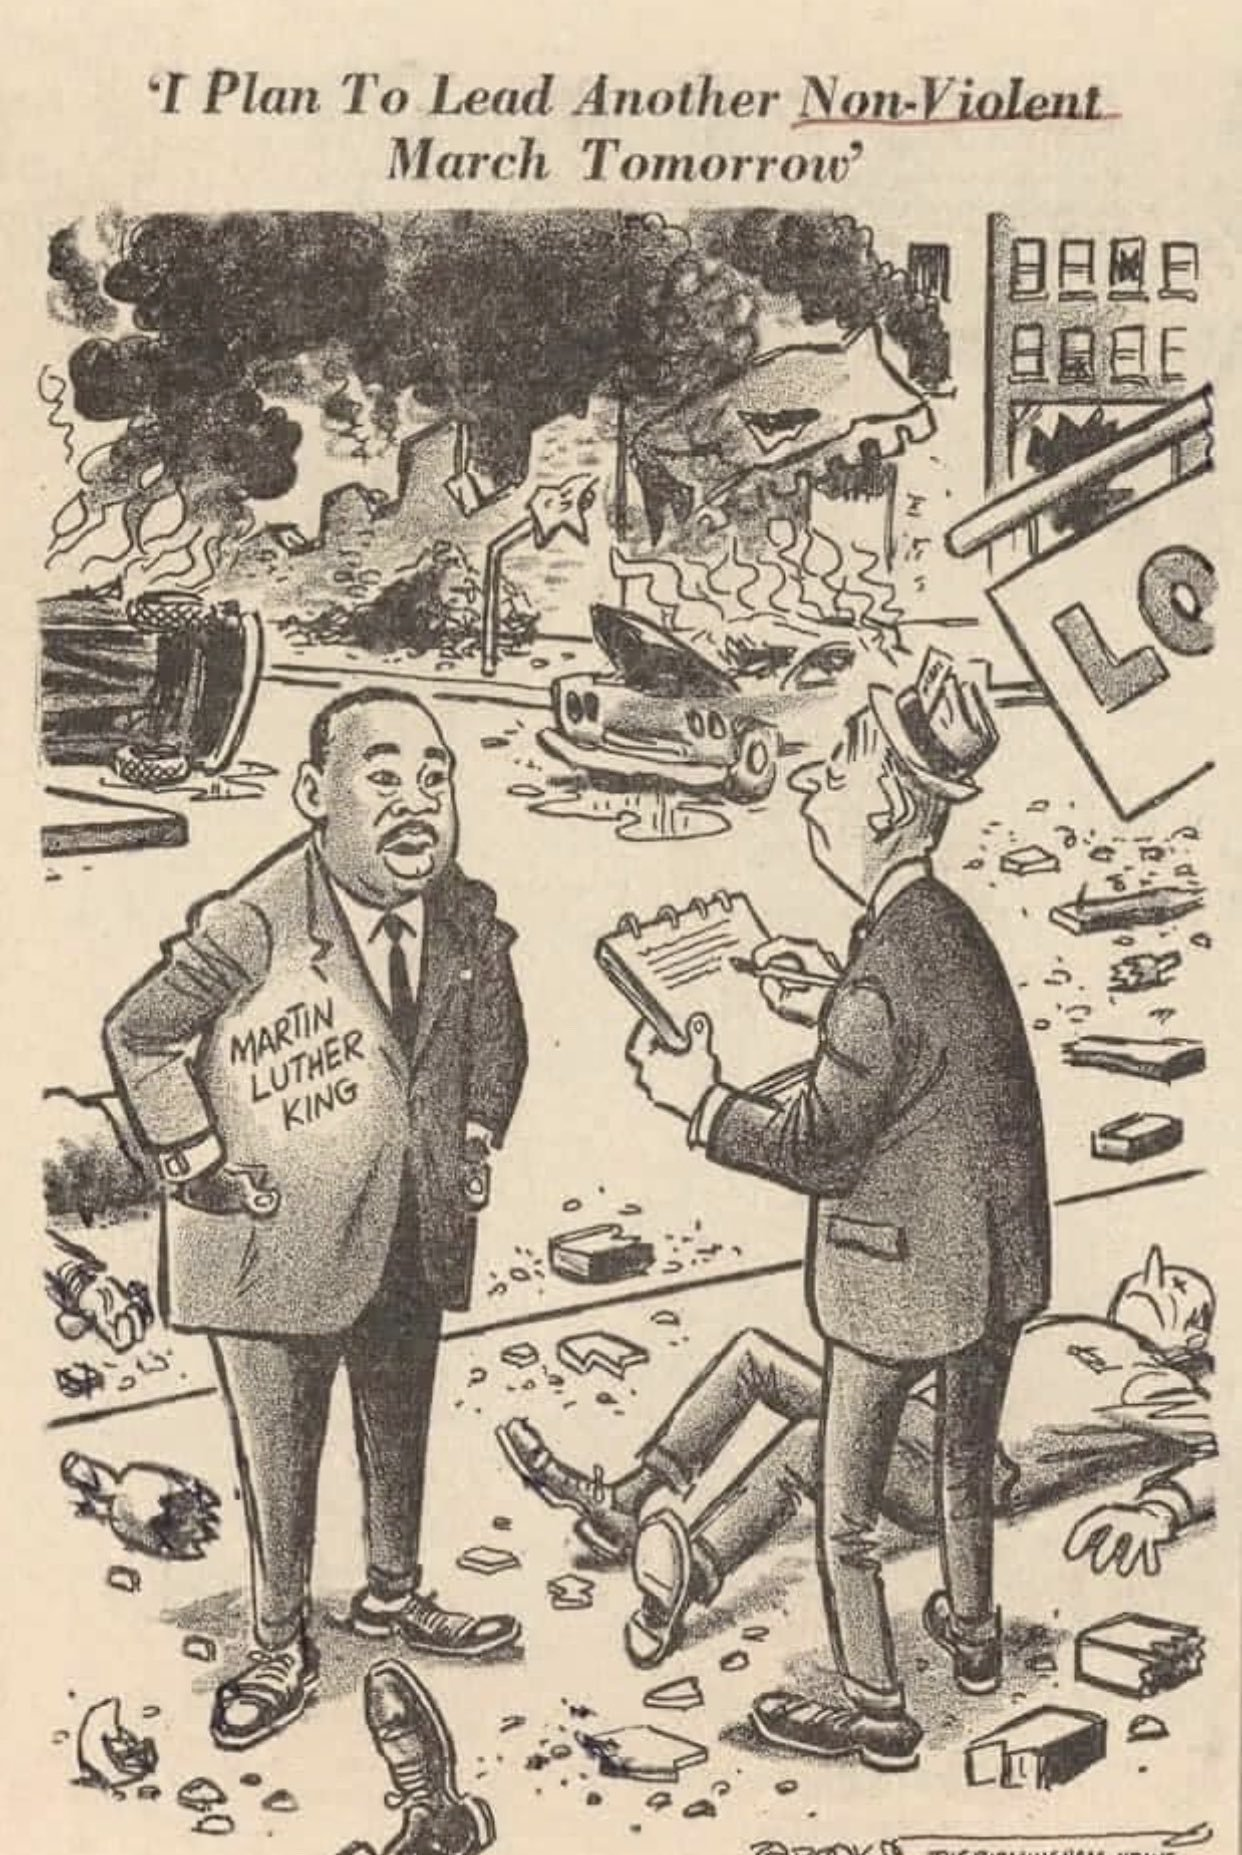 Martin Luther King Jr. - I plan to lead another non-violent march tomorrow cartoon